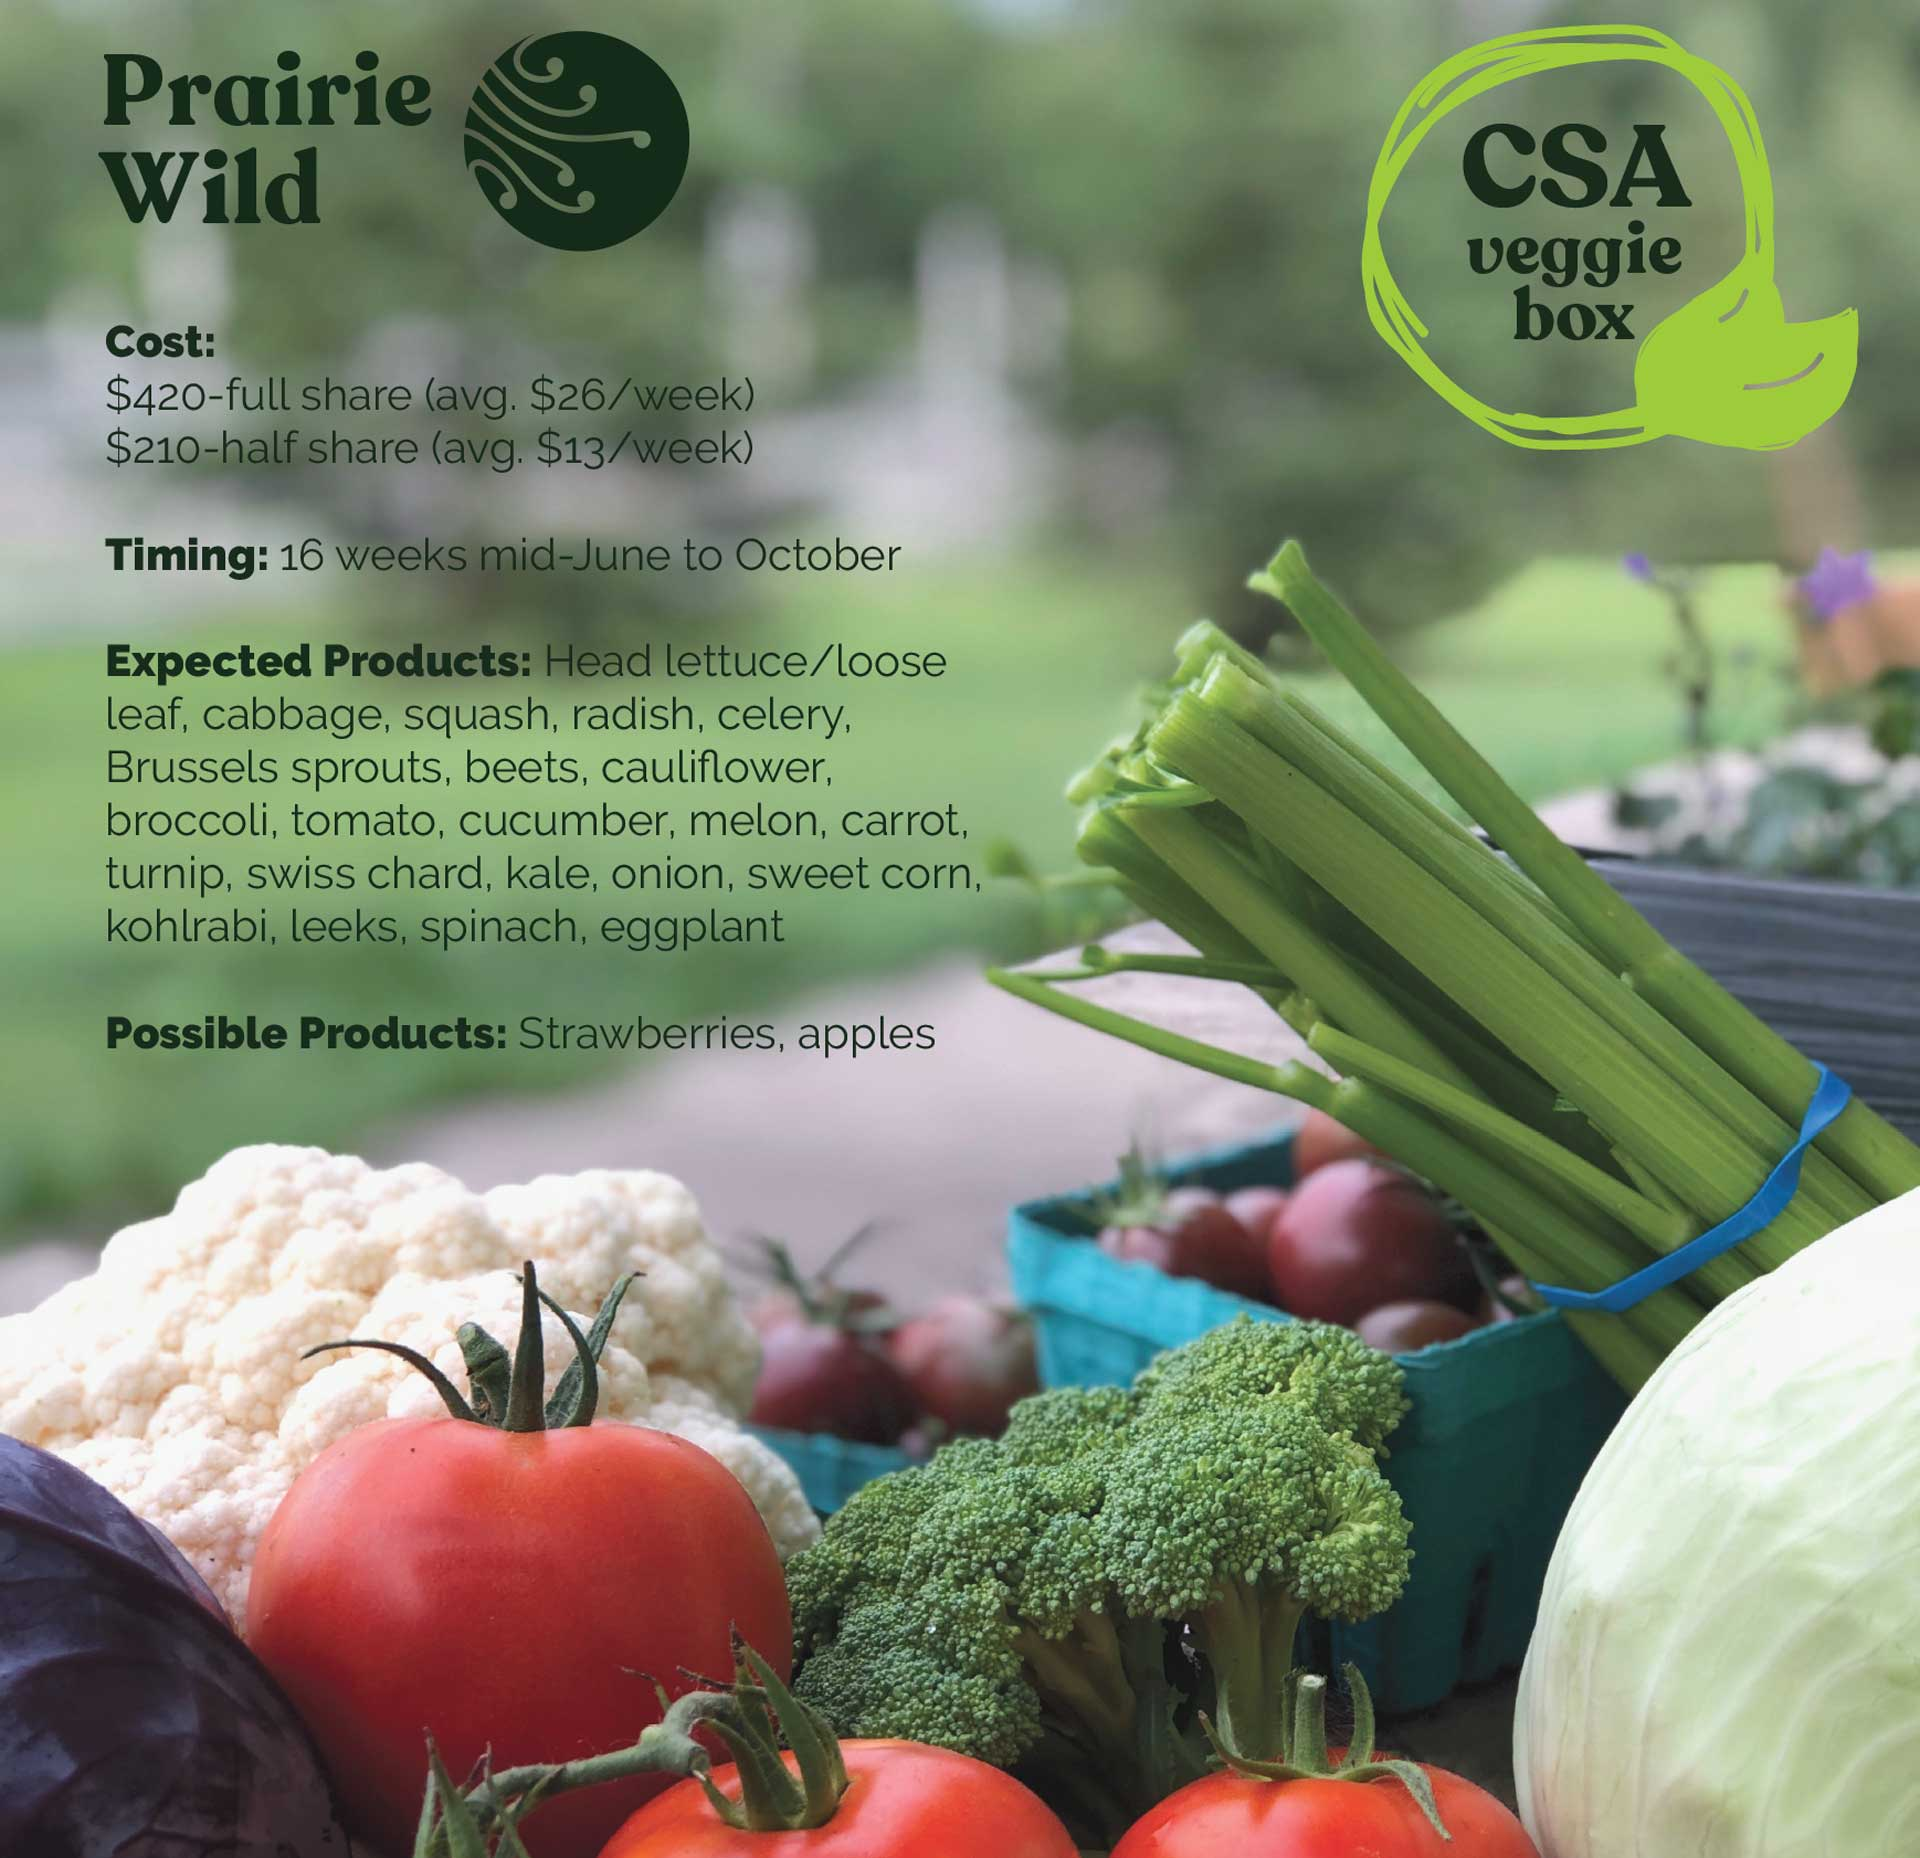 Prairie Wild Veggie Box Subscriptions Available for 2021!